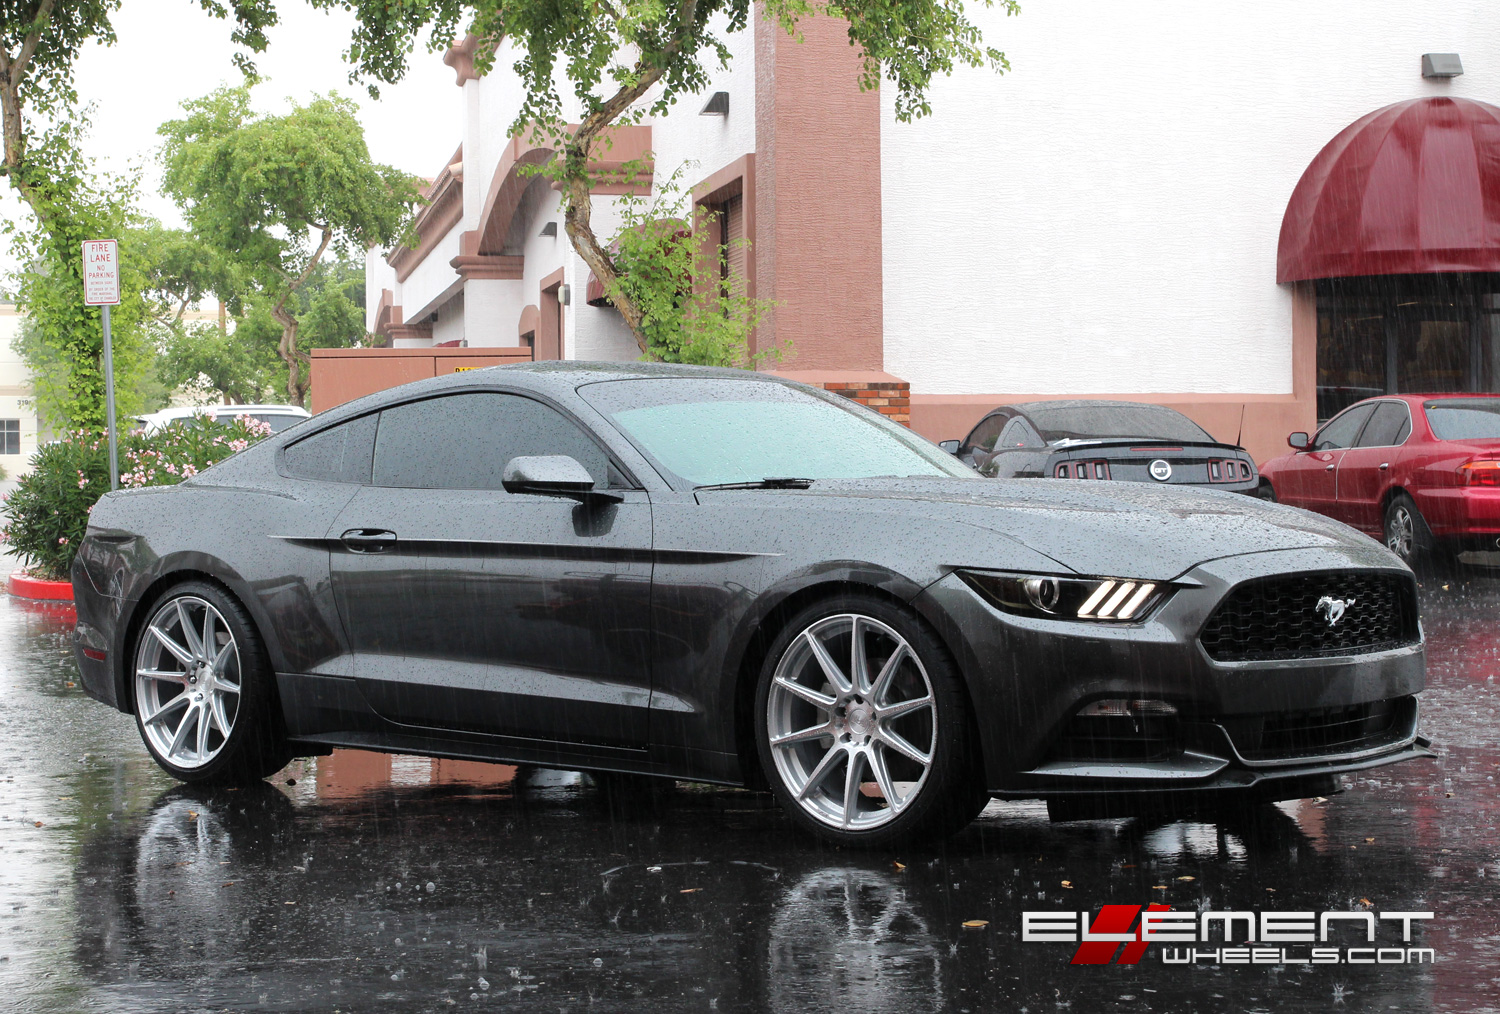 Niche Wheels Mustang >> 20 Inch Staggered Niche Essen Wheels On 2015 Ford Mustang W